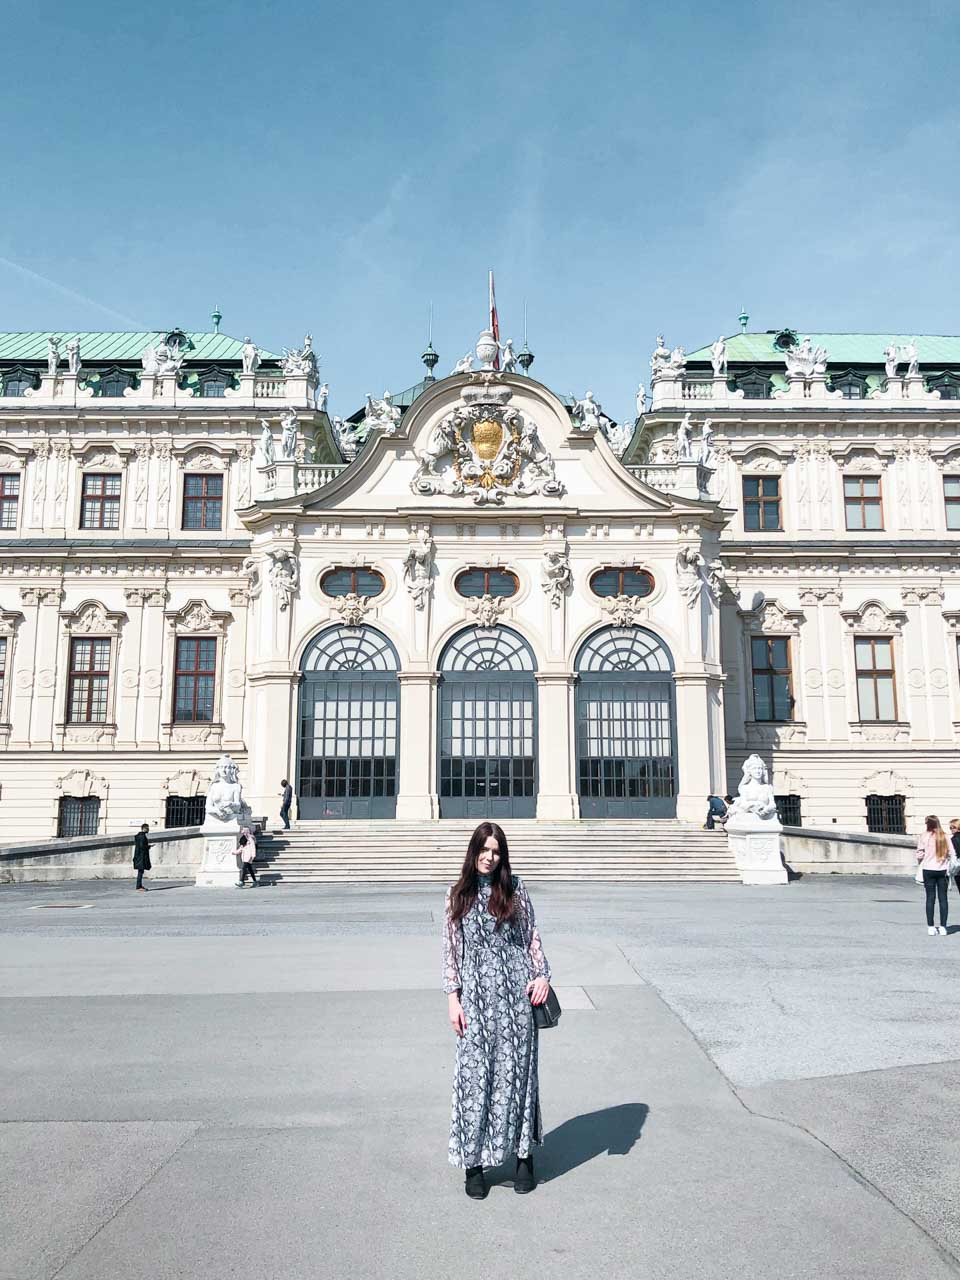 A girl in an animal print dress standing outside the Belvedere Palace in Vienna, Austria